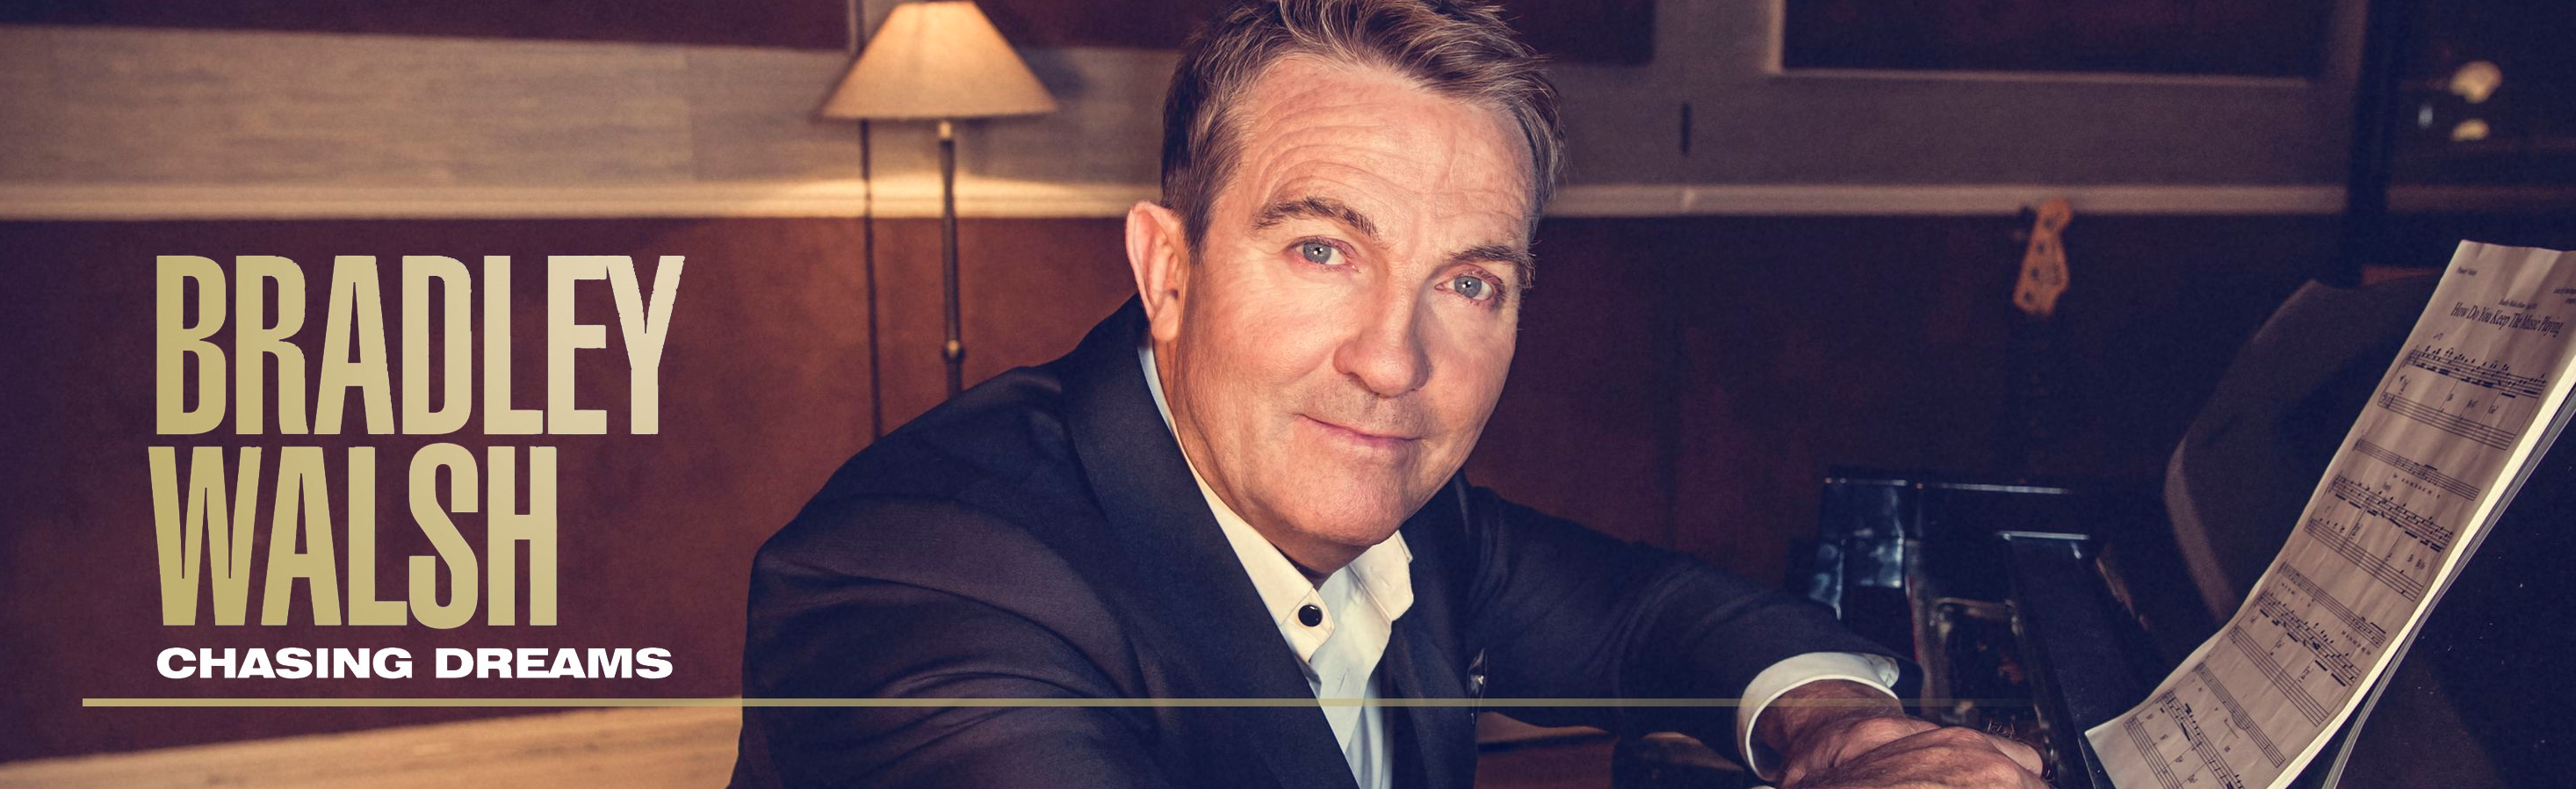 Bradley Walsh Chasing Dreams Album